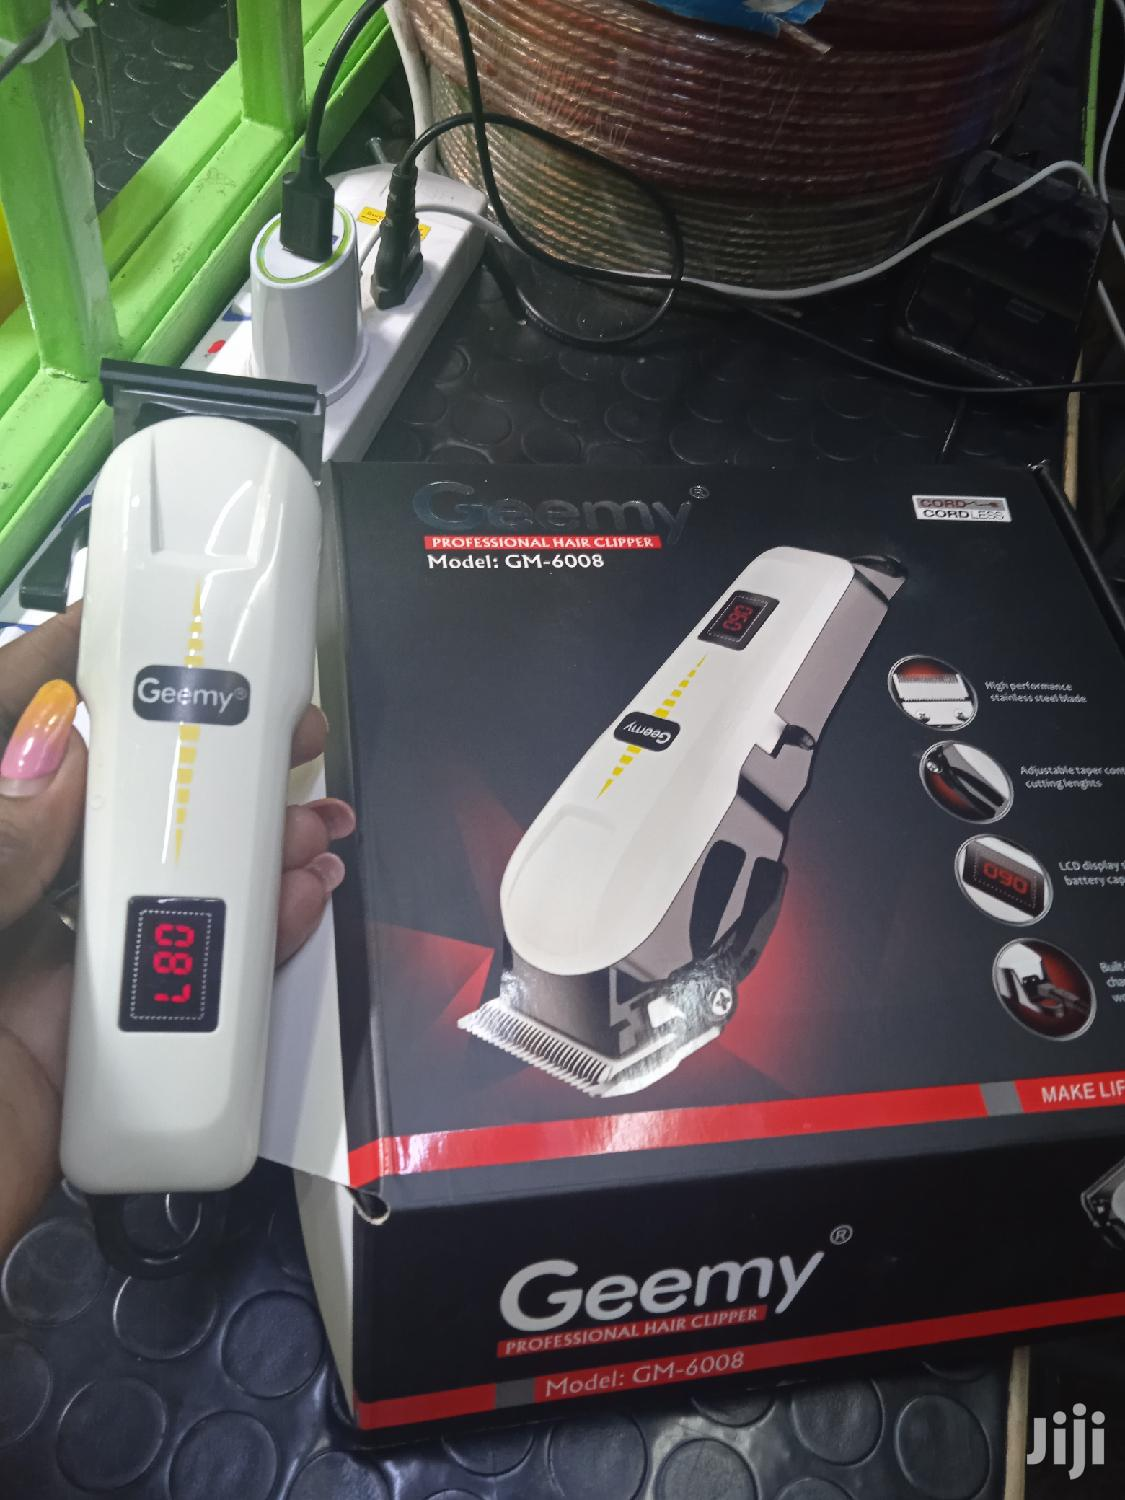 Geemy Proffessional Lcd Display Rechargeable Hair Clipper